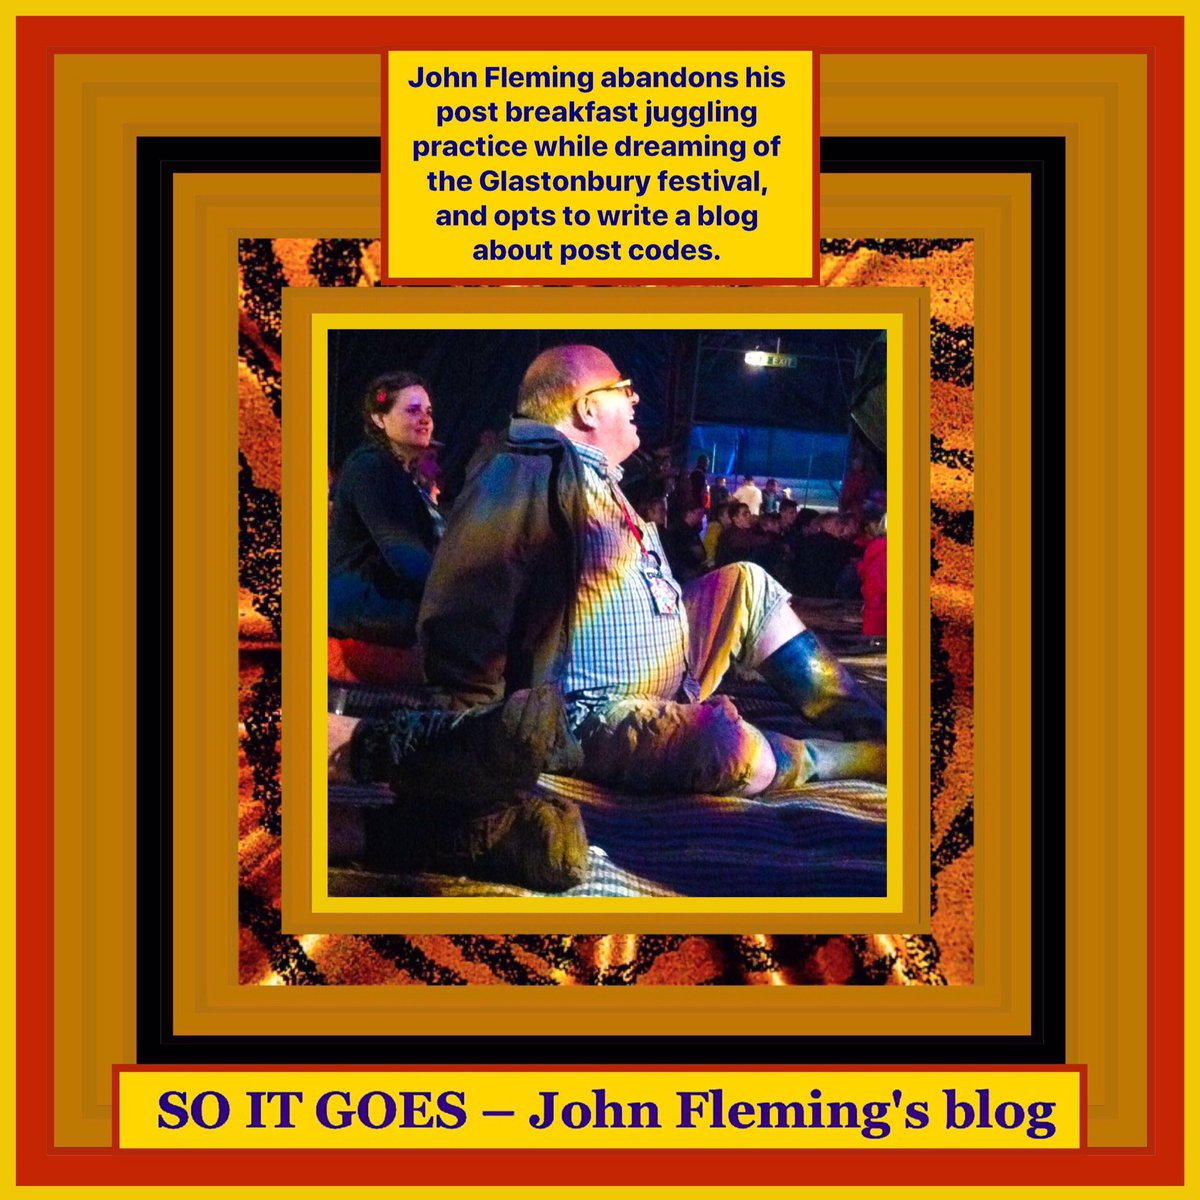 John Fleming abandons his post breakfast juggling practice, and opts to write about #postcodes  #thejohnfleming #blog  #archway #wimbledon #walthamstow #theangel #woodgreen #stokenewington #bethnalgreen #kentishtown #hoxton #eastfinchley #clerkenwell #nyc